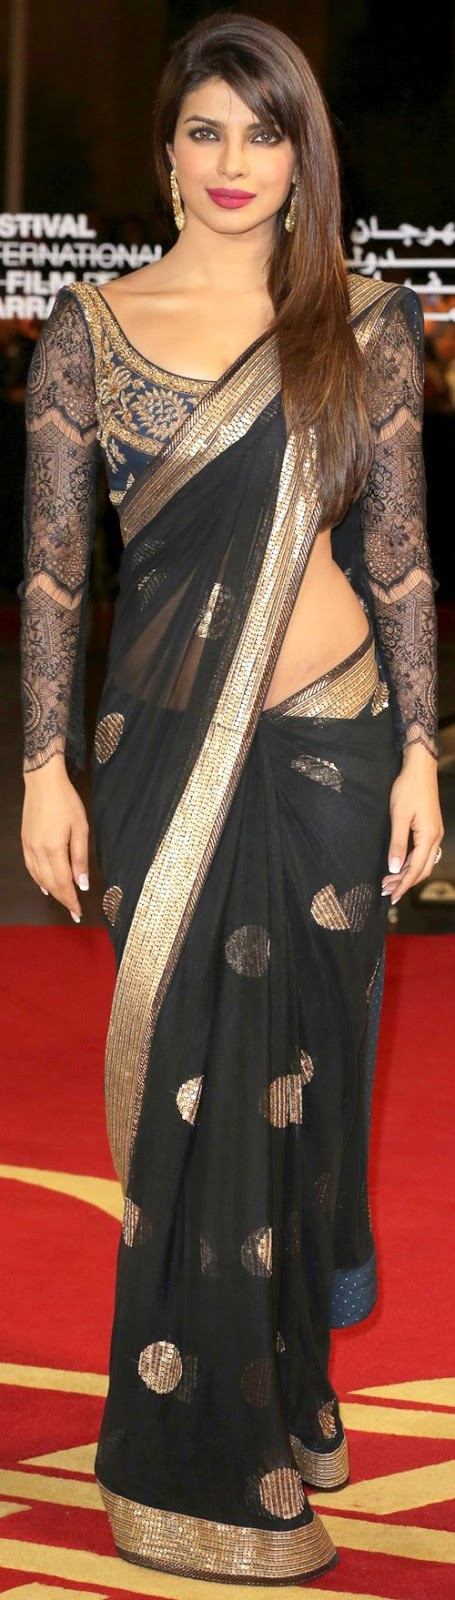 Priyanka Chopra wearing a black saree